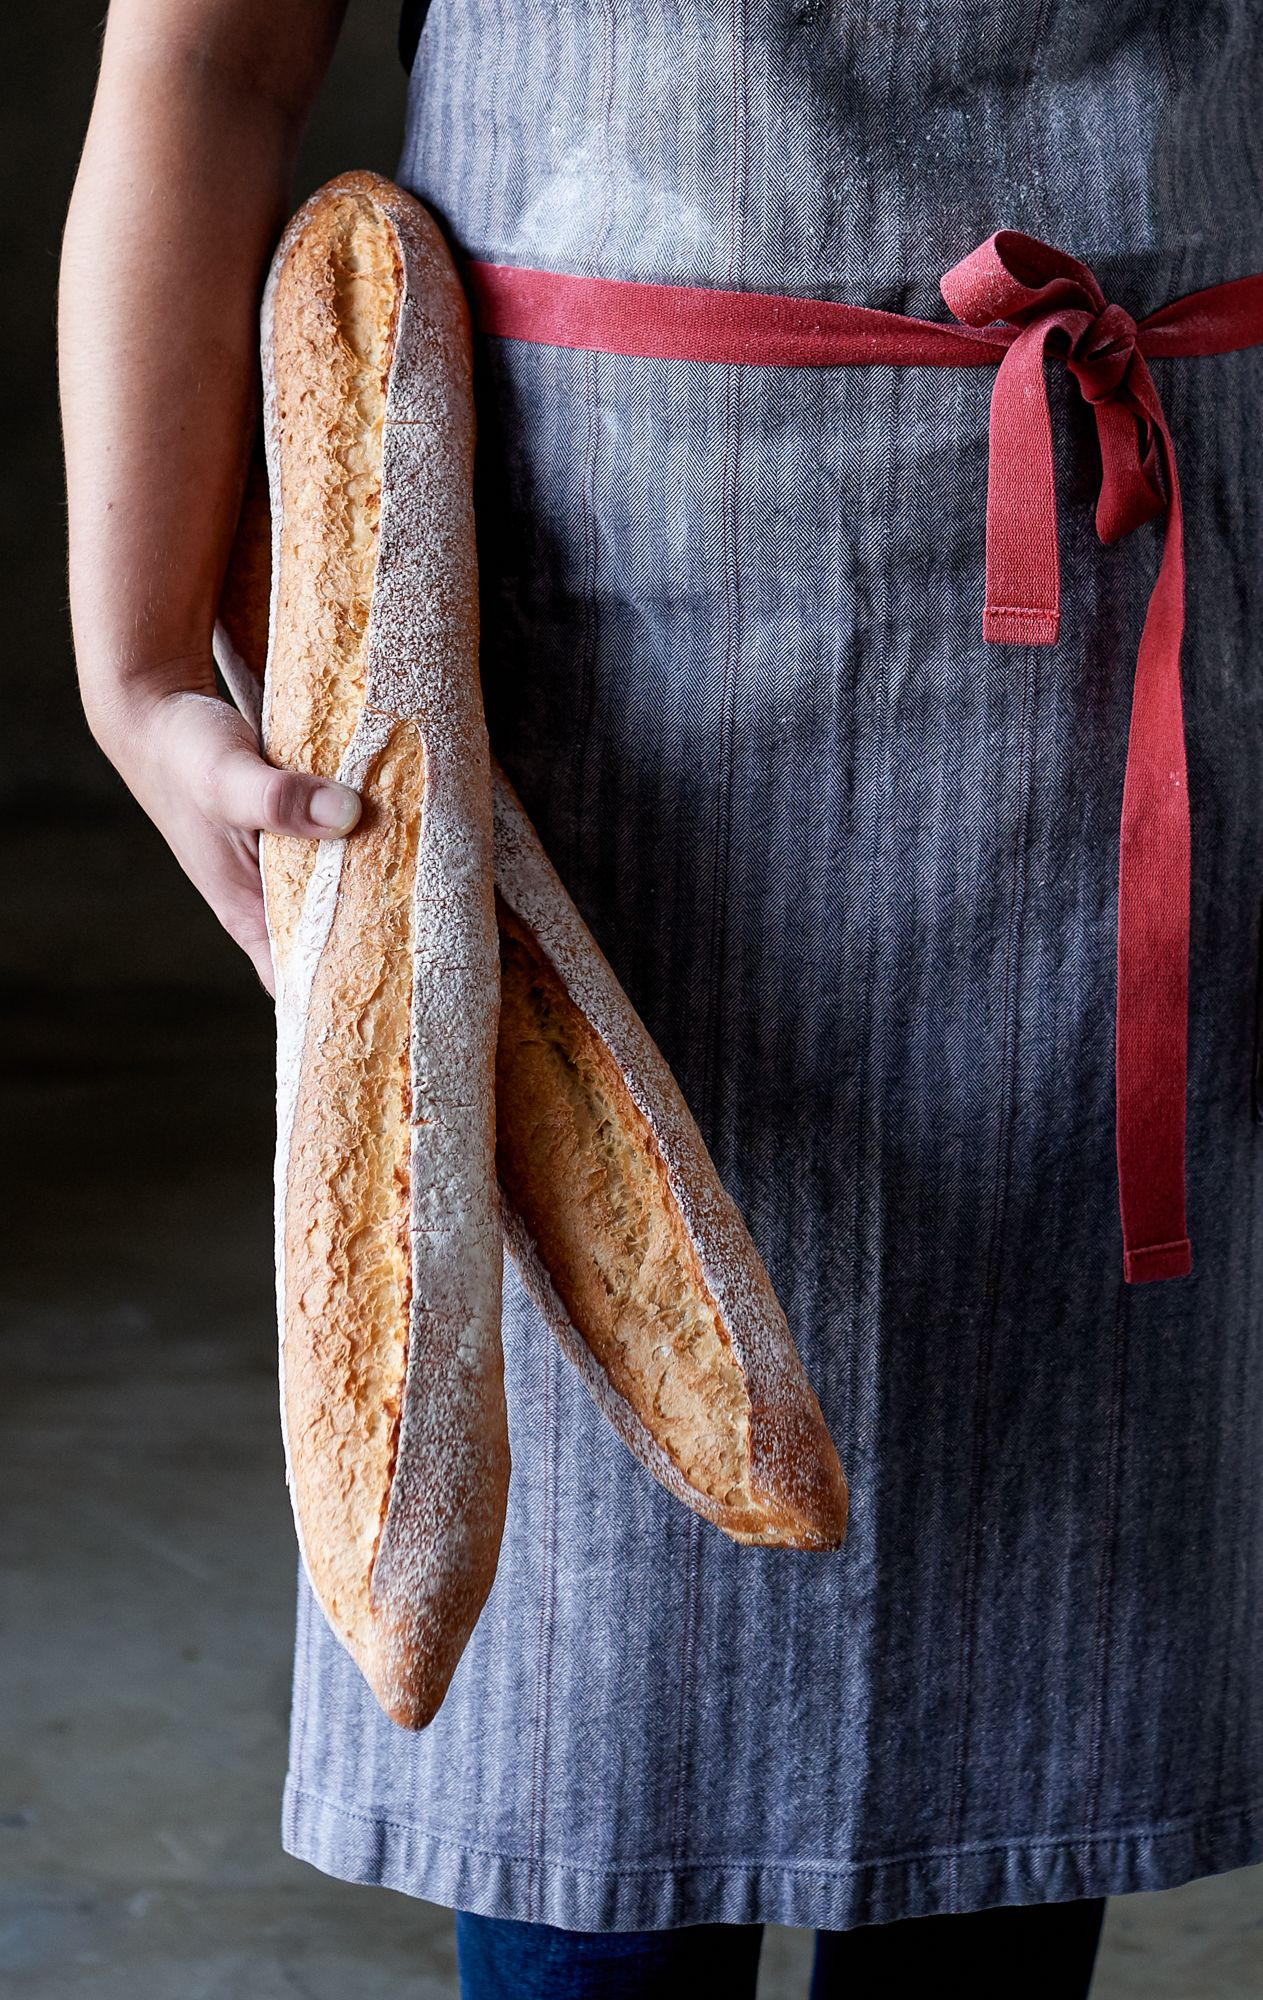 Hands Holding Fresh French Baguette Bread